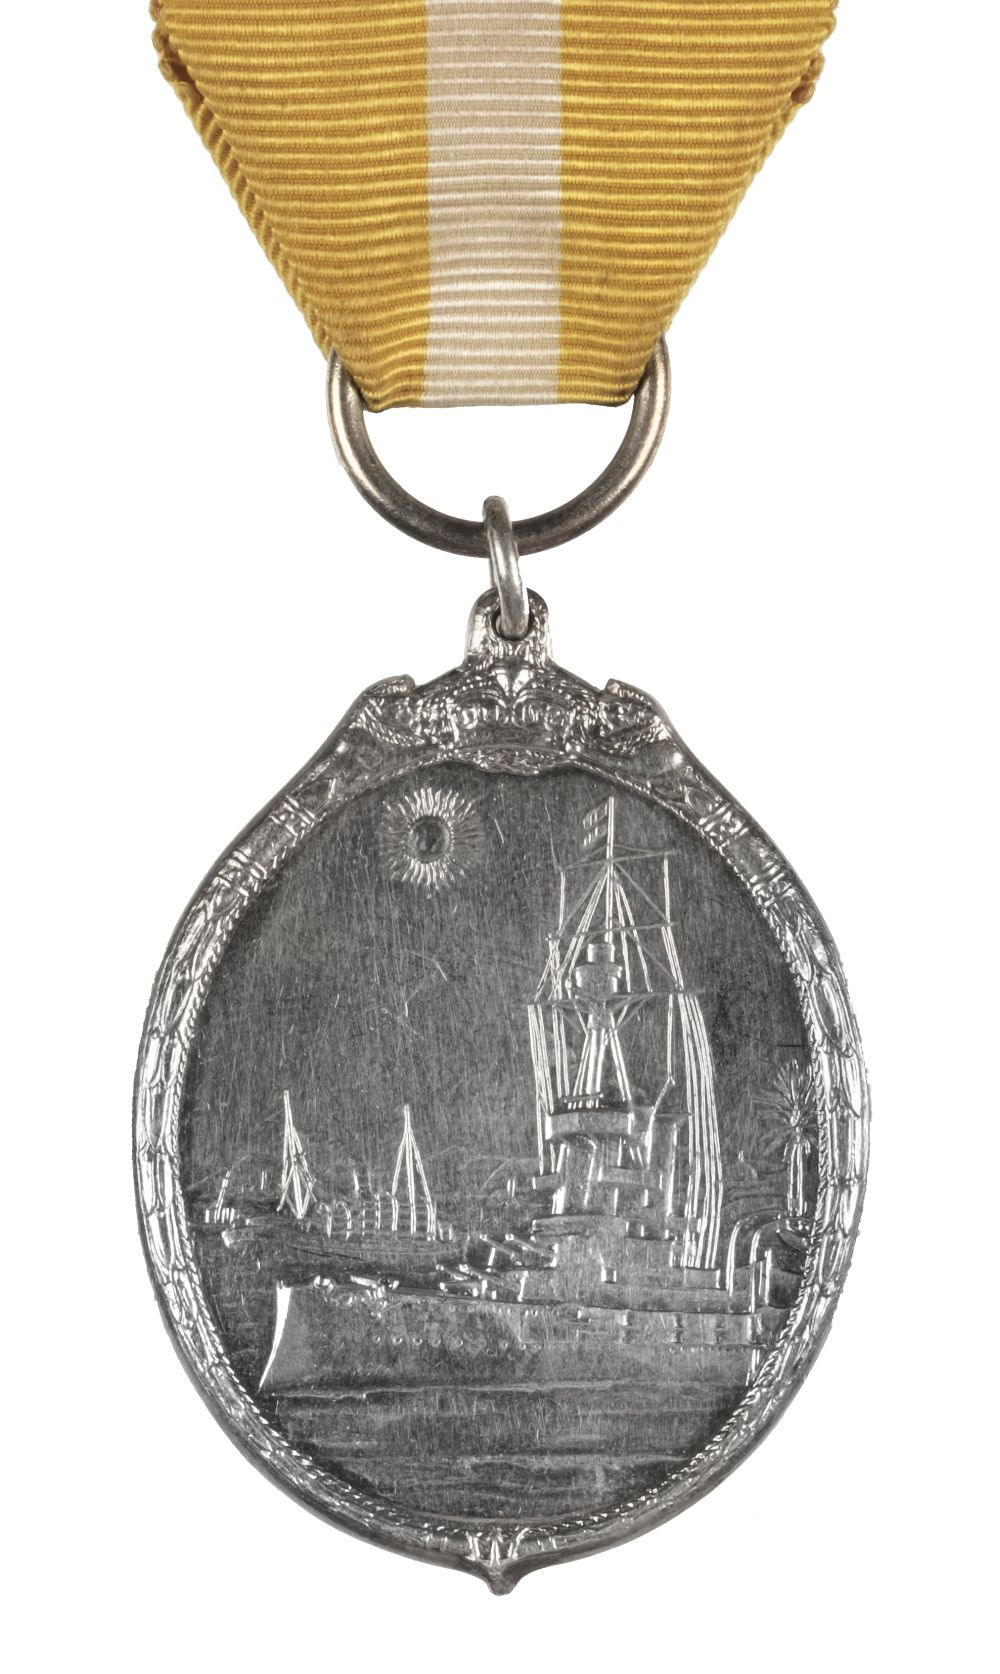 * Queen's Medal for Native Chiefs